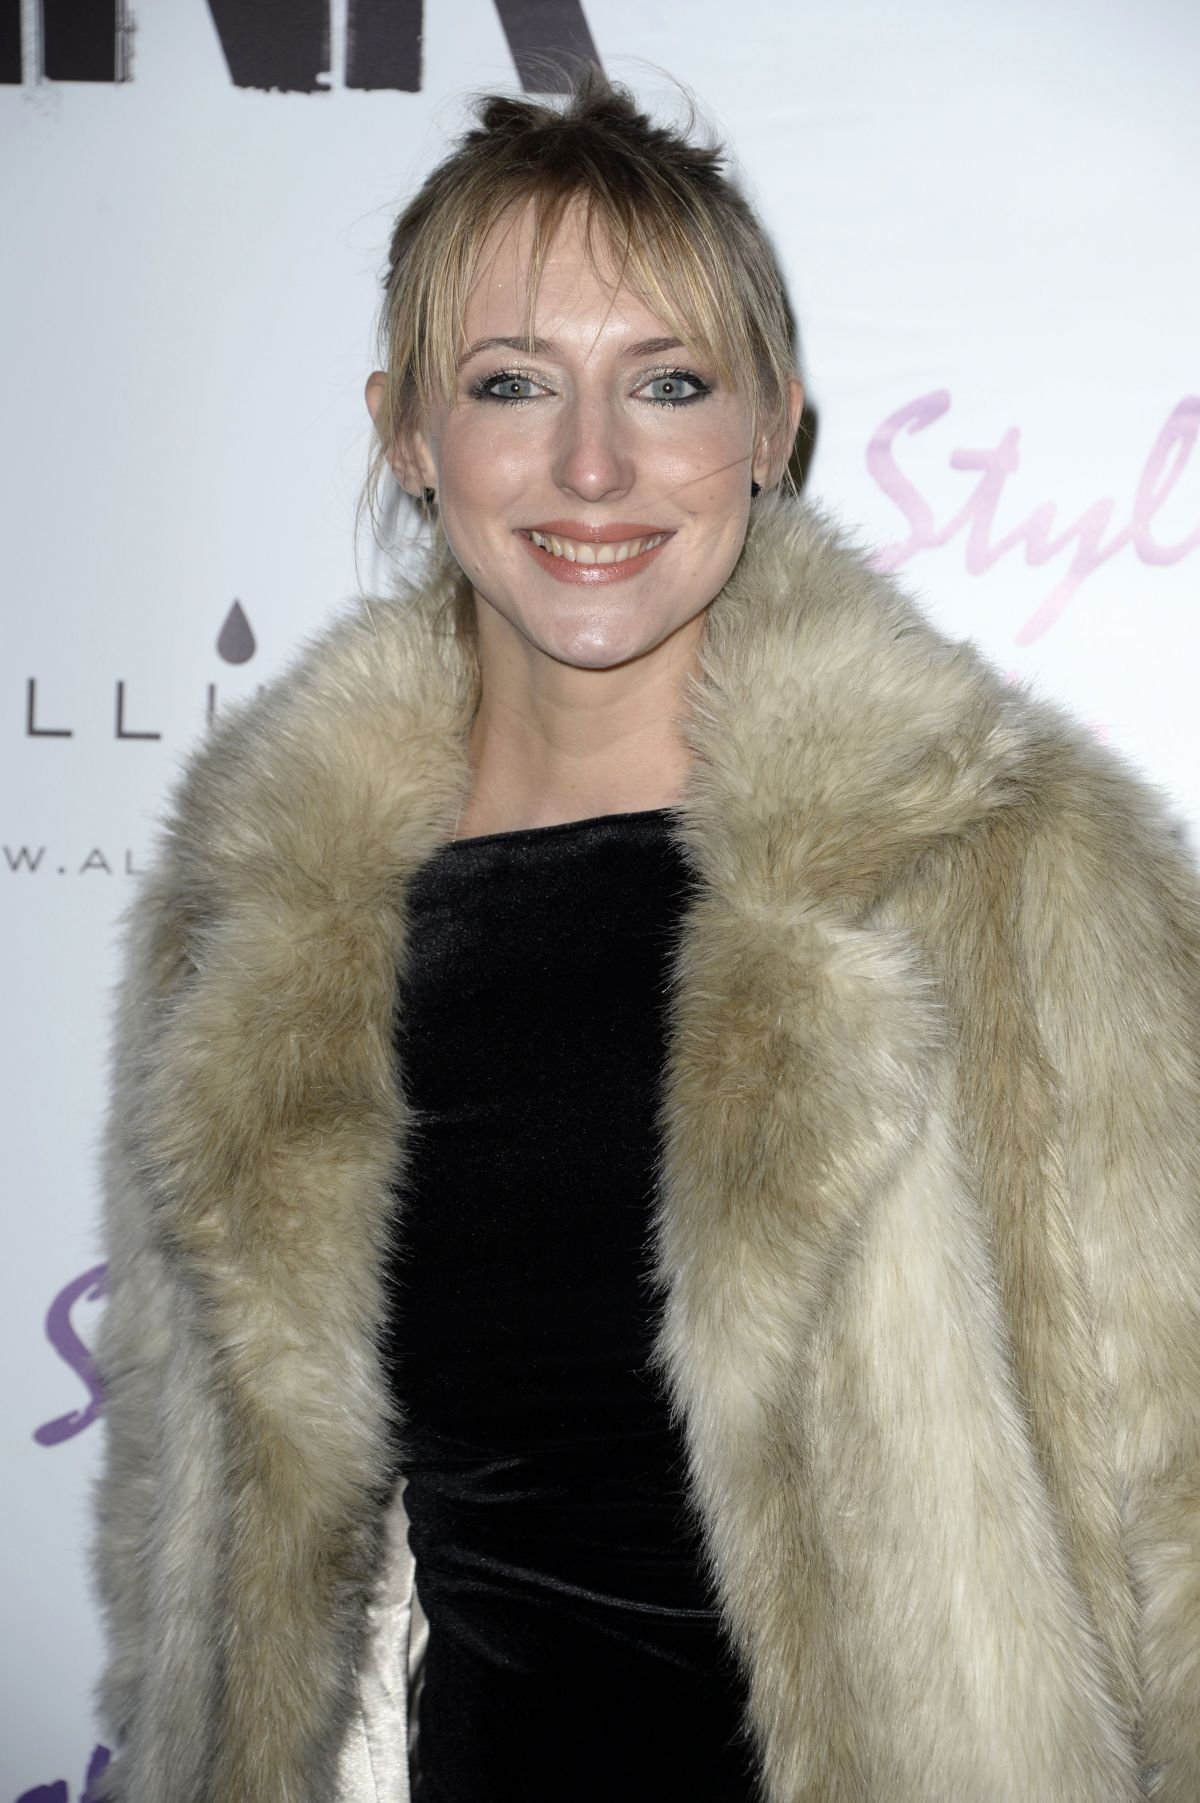 Ali Bastian At 'A Night With Nick' Annual Fundraiser At INK In London